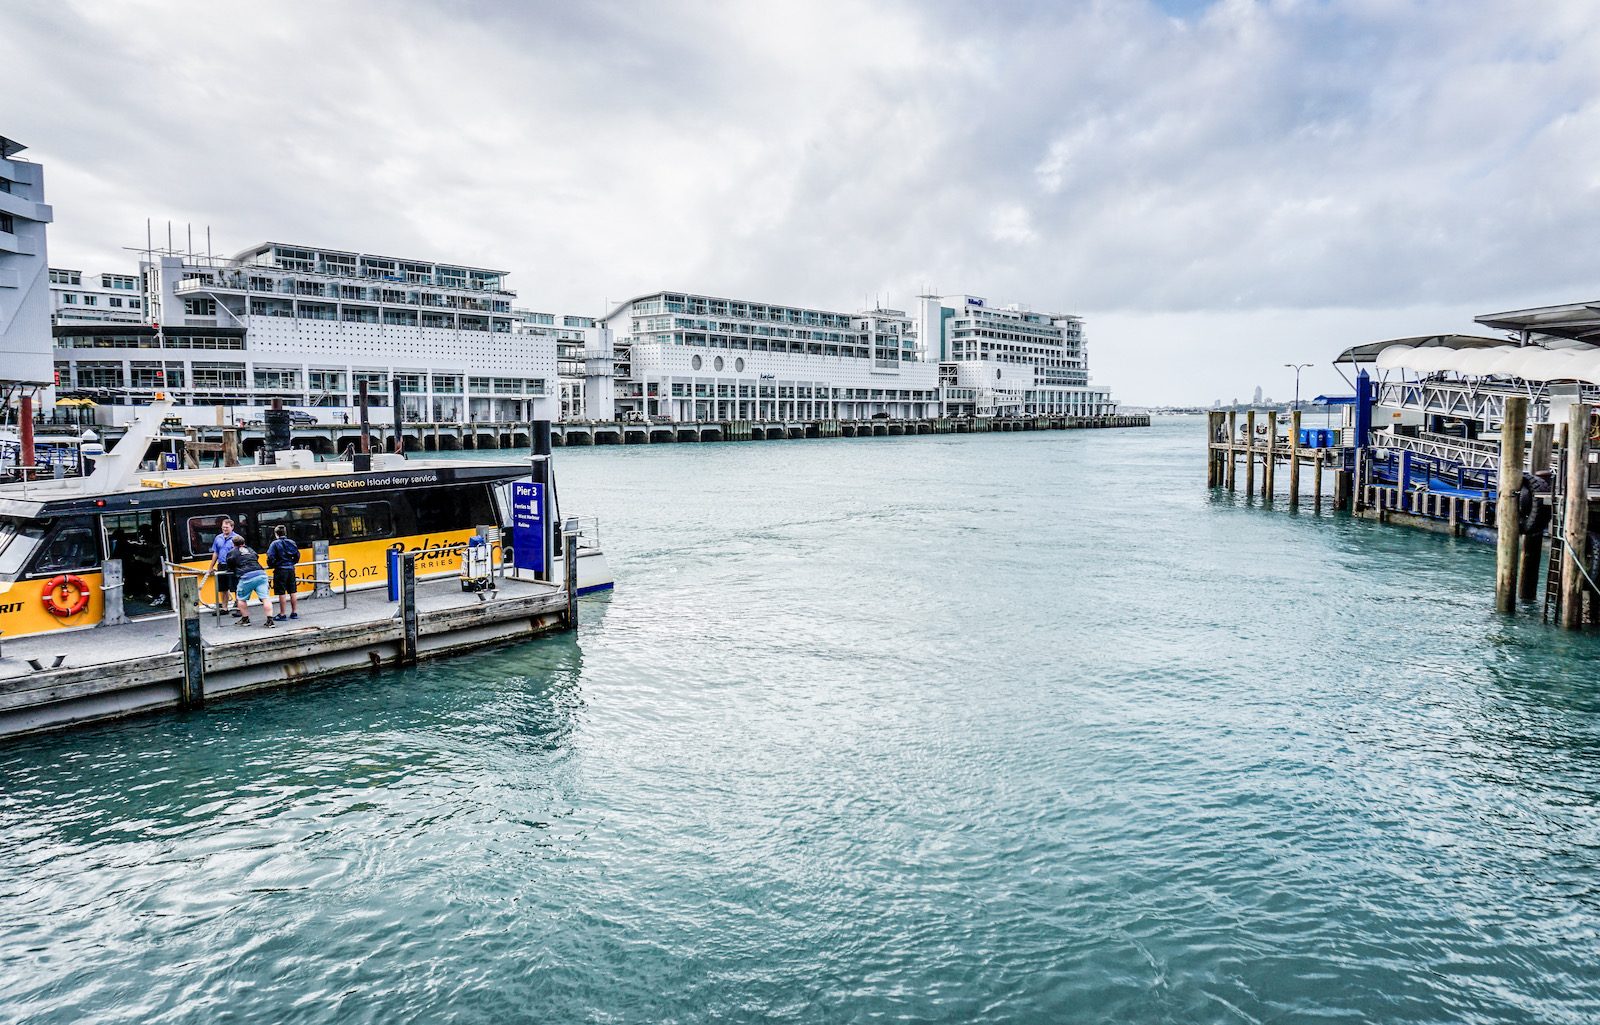 The Hilton Hotel and apartments, Auckland Harbour, New Zealand